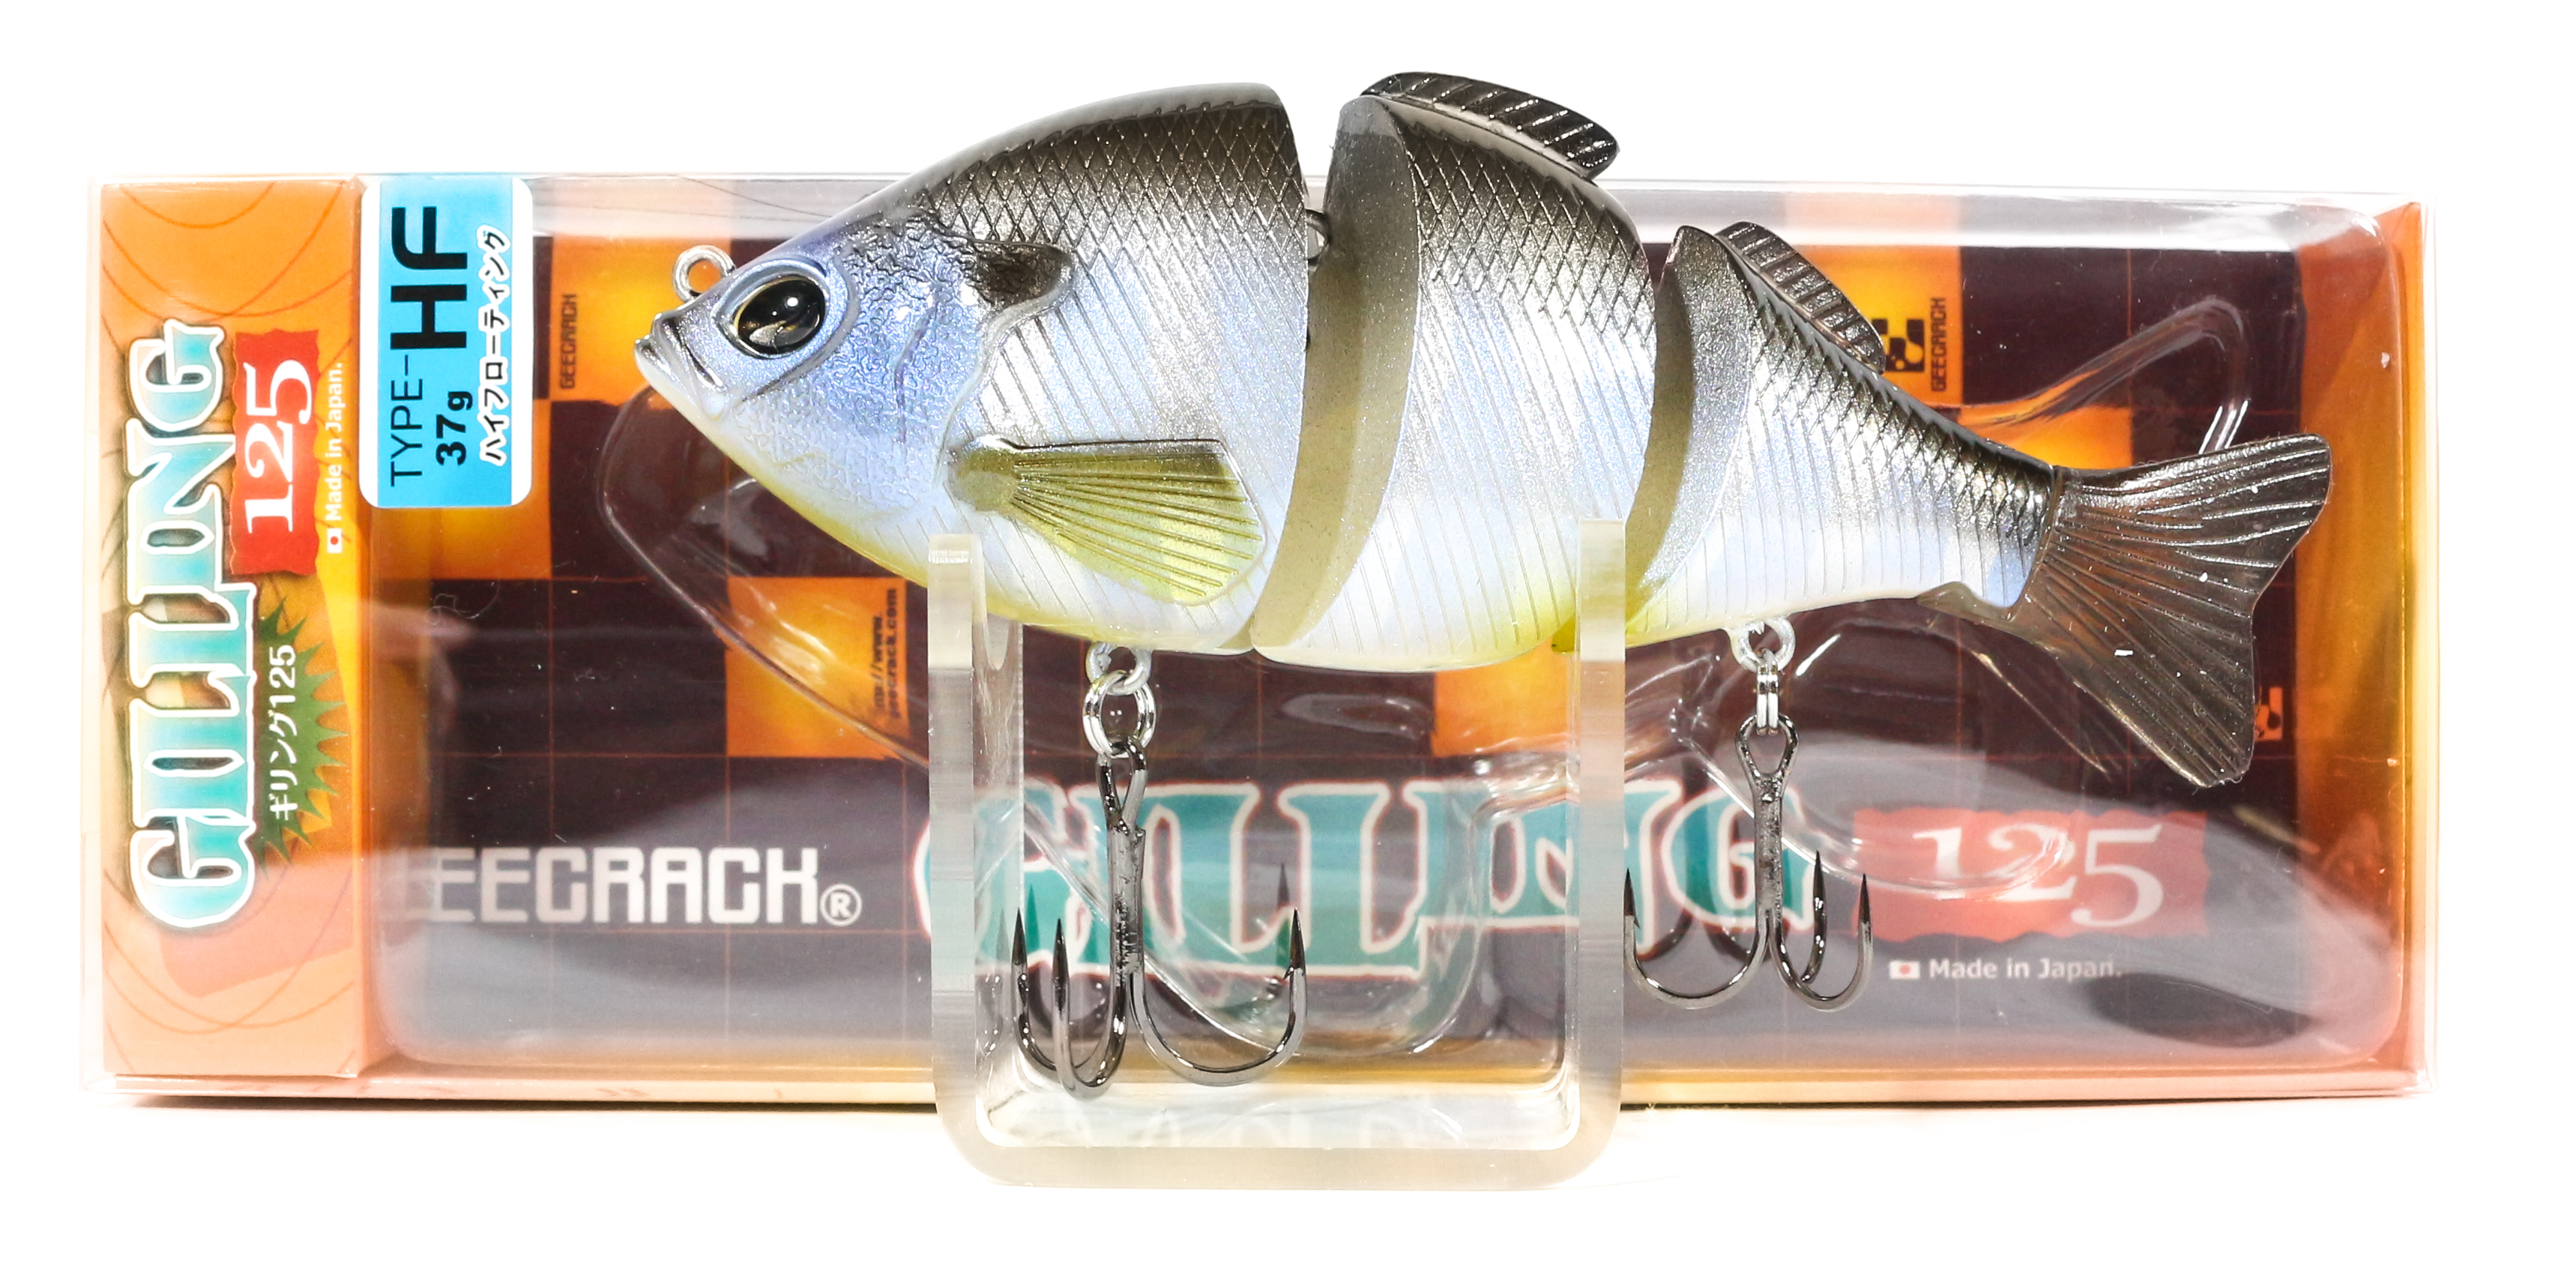 Sale Gee Crack Gilling 125 HF Jointed High Floating Lure 030 (8409)